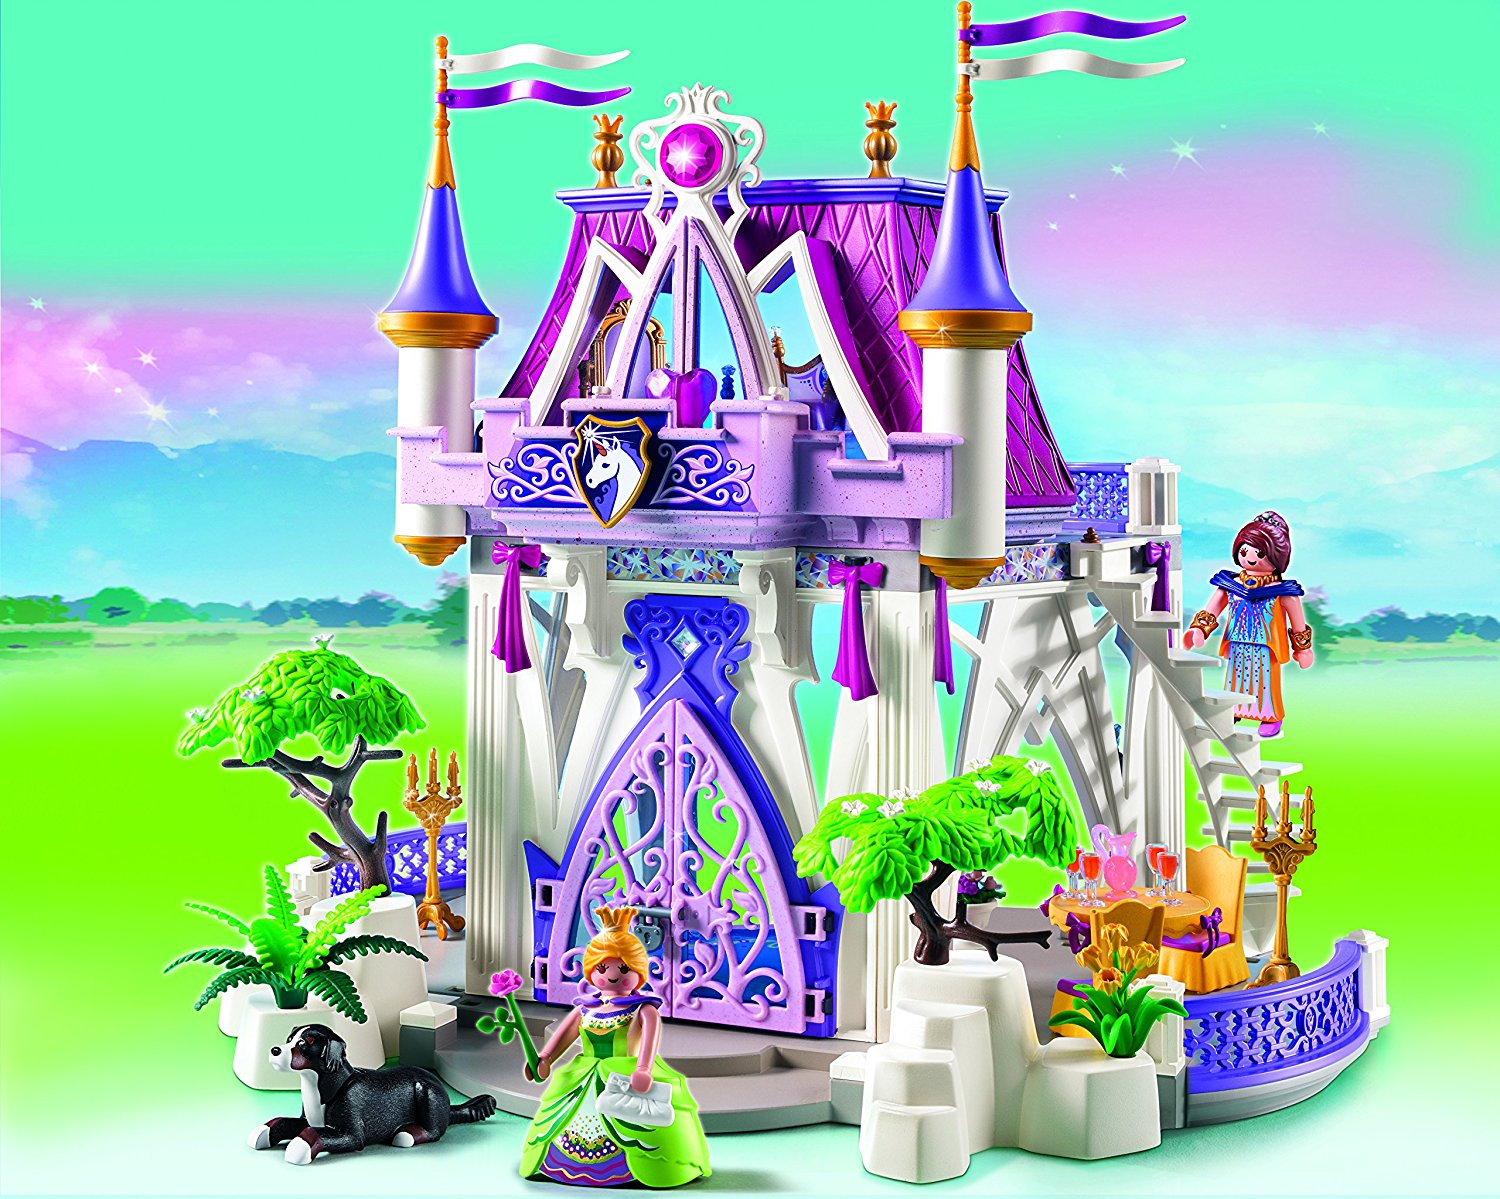 The unicorn jewel castle Playmobil 5474